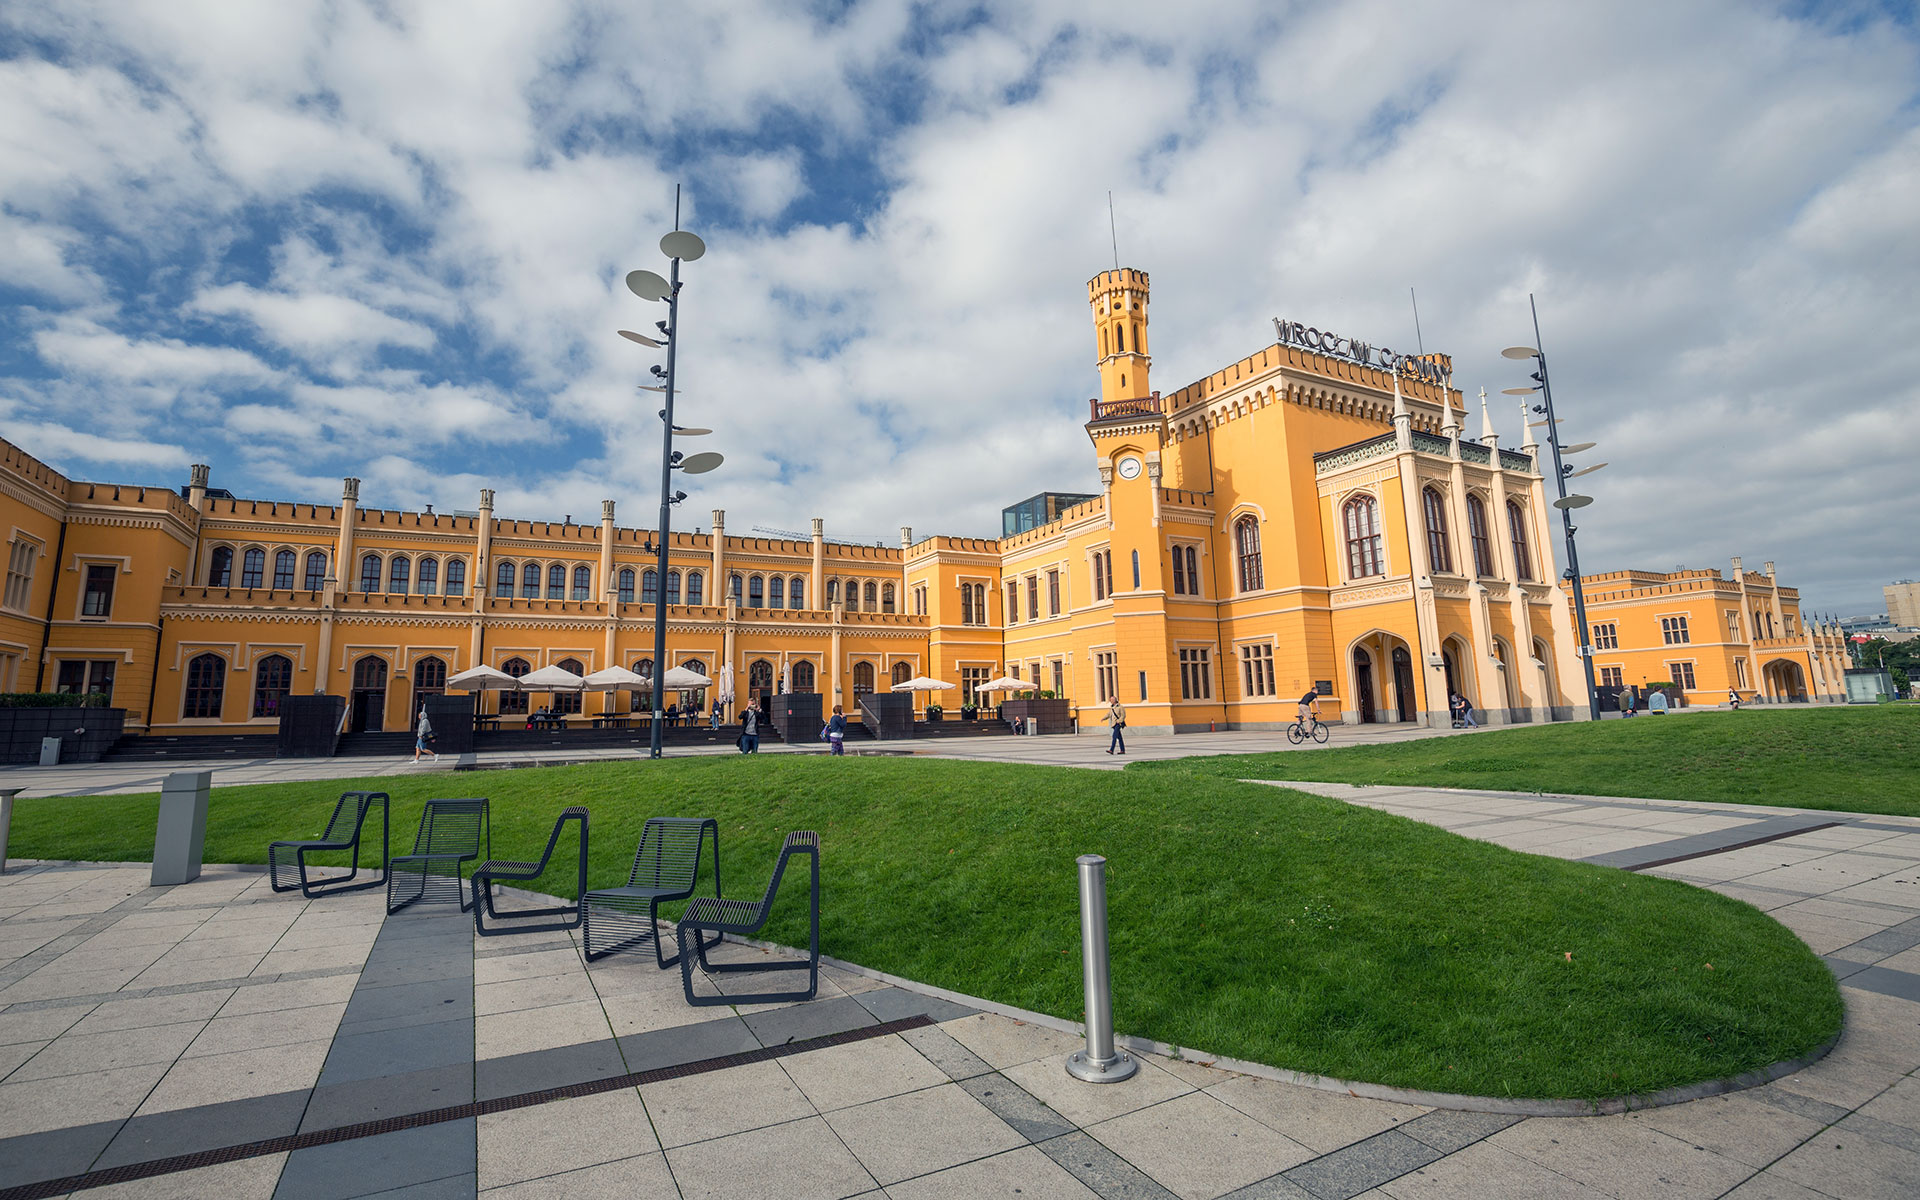 Wroclaw Glowny station (photo © Rochu2008 / dreamstime.com).